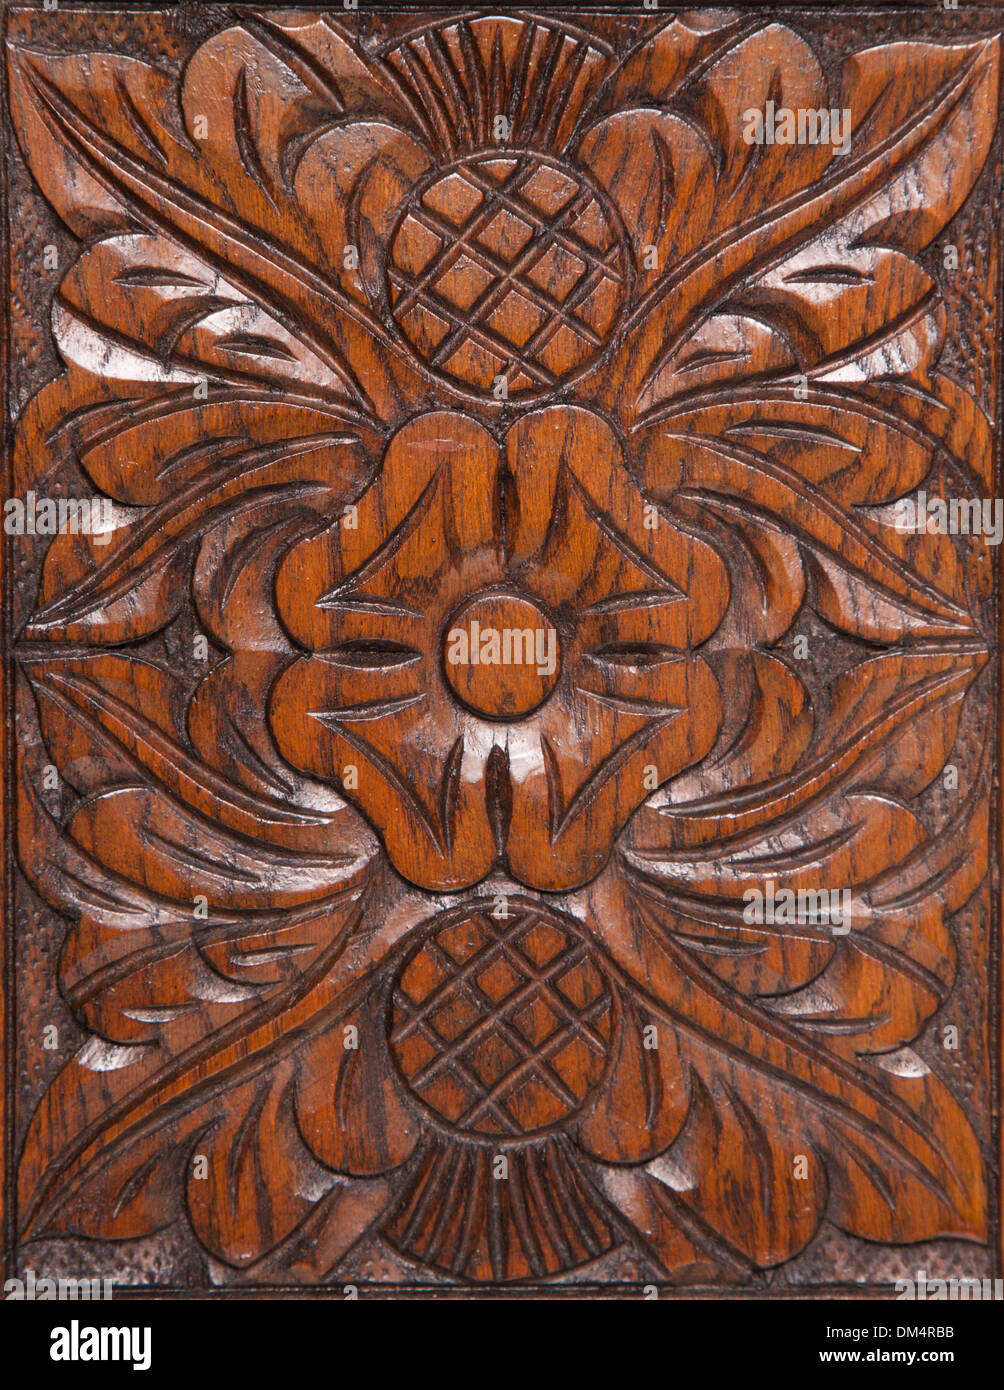 Wood carving background stock photos & wood carving background stock